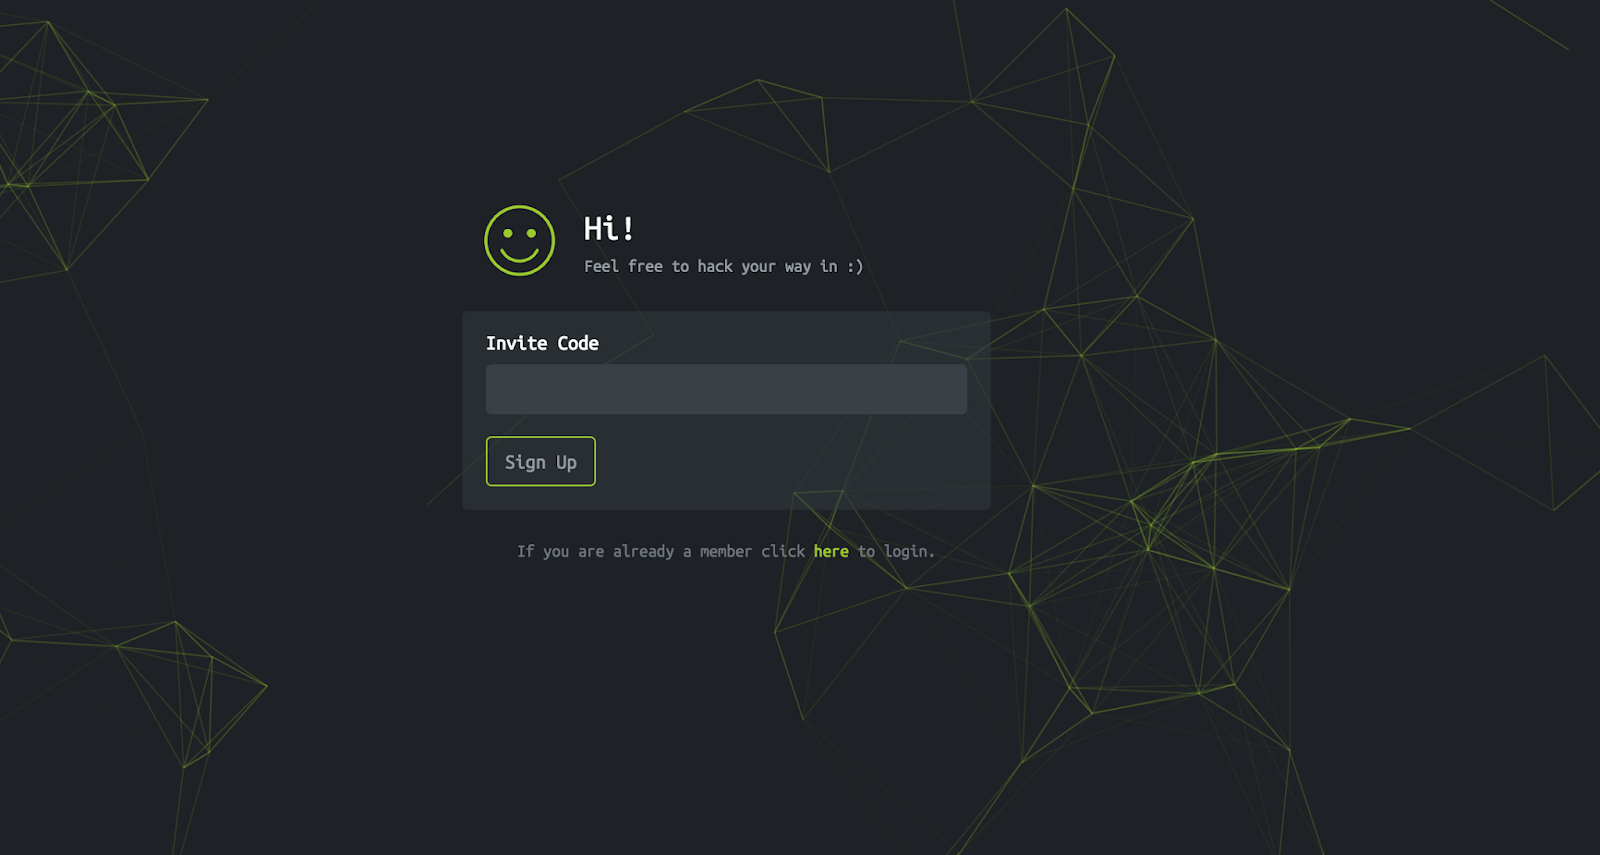 Ethical Hacking Platform for Penetration Testing   How to Hack the